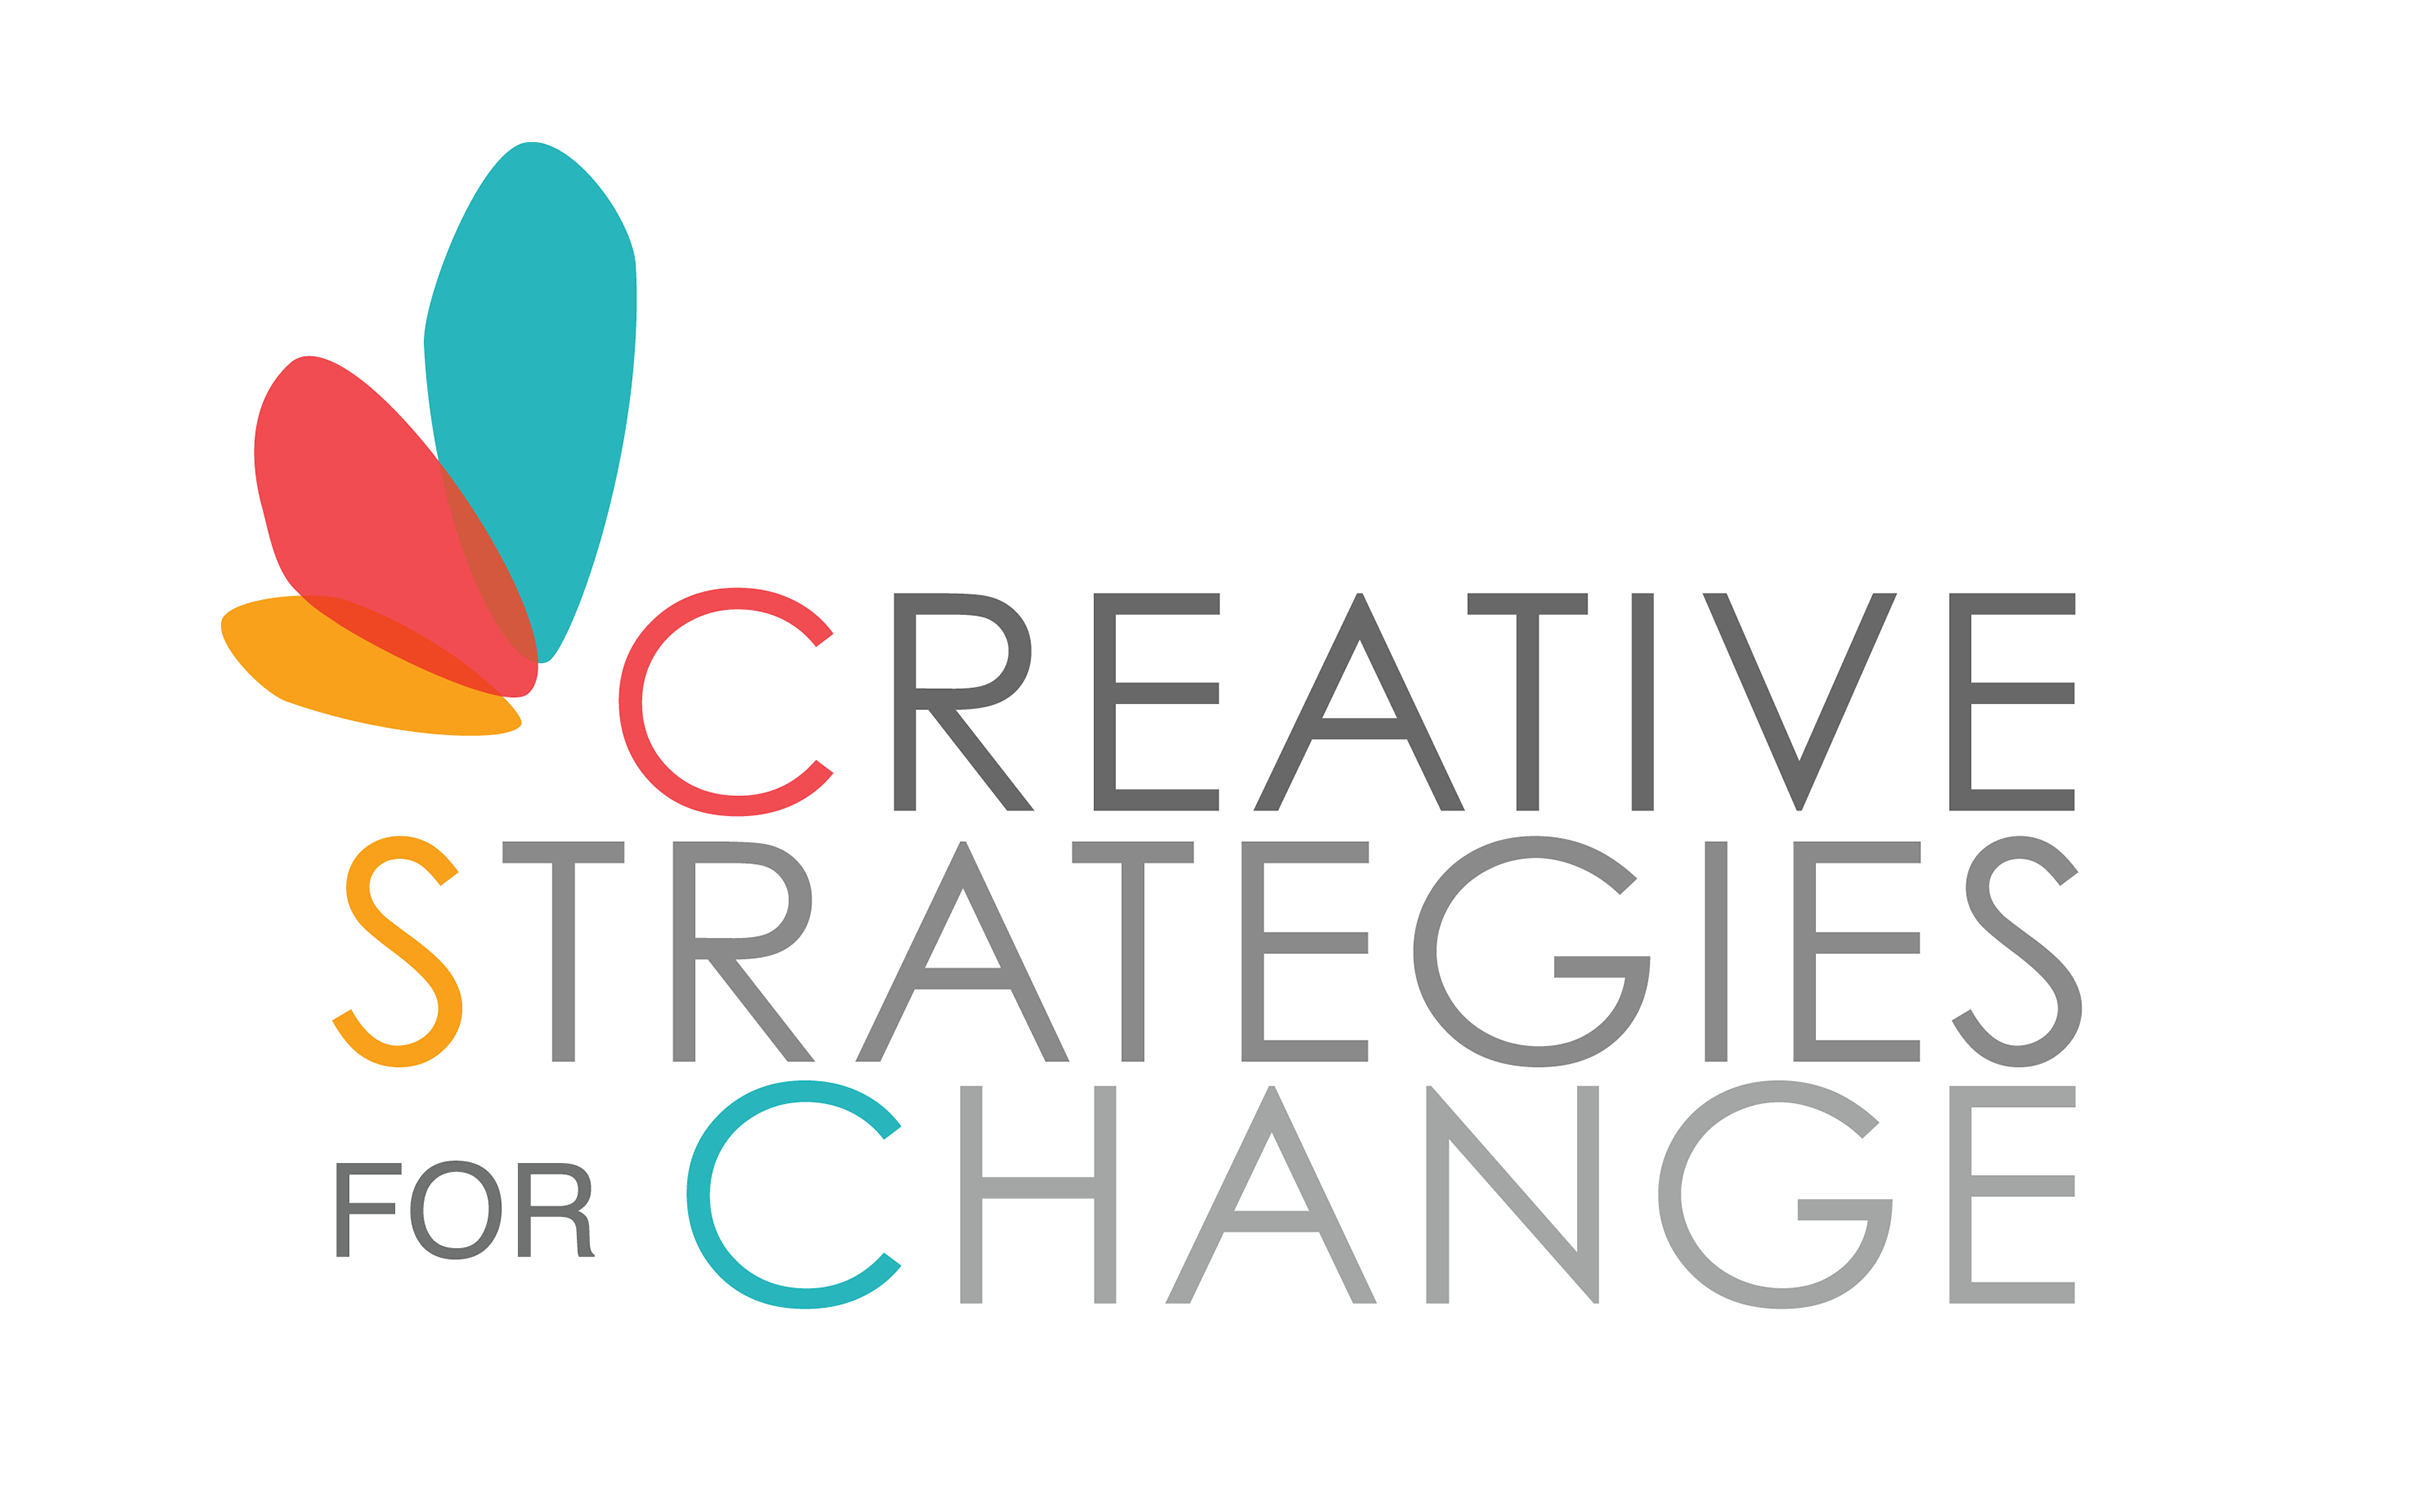 Creative Strategies For Change logo